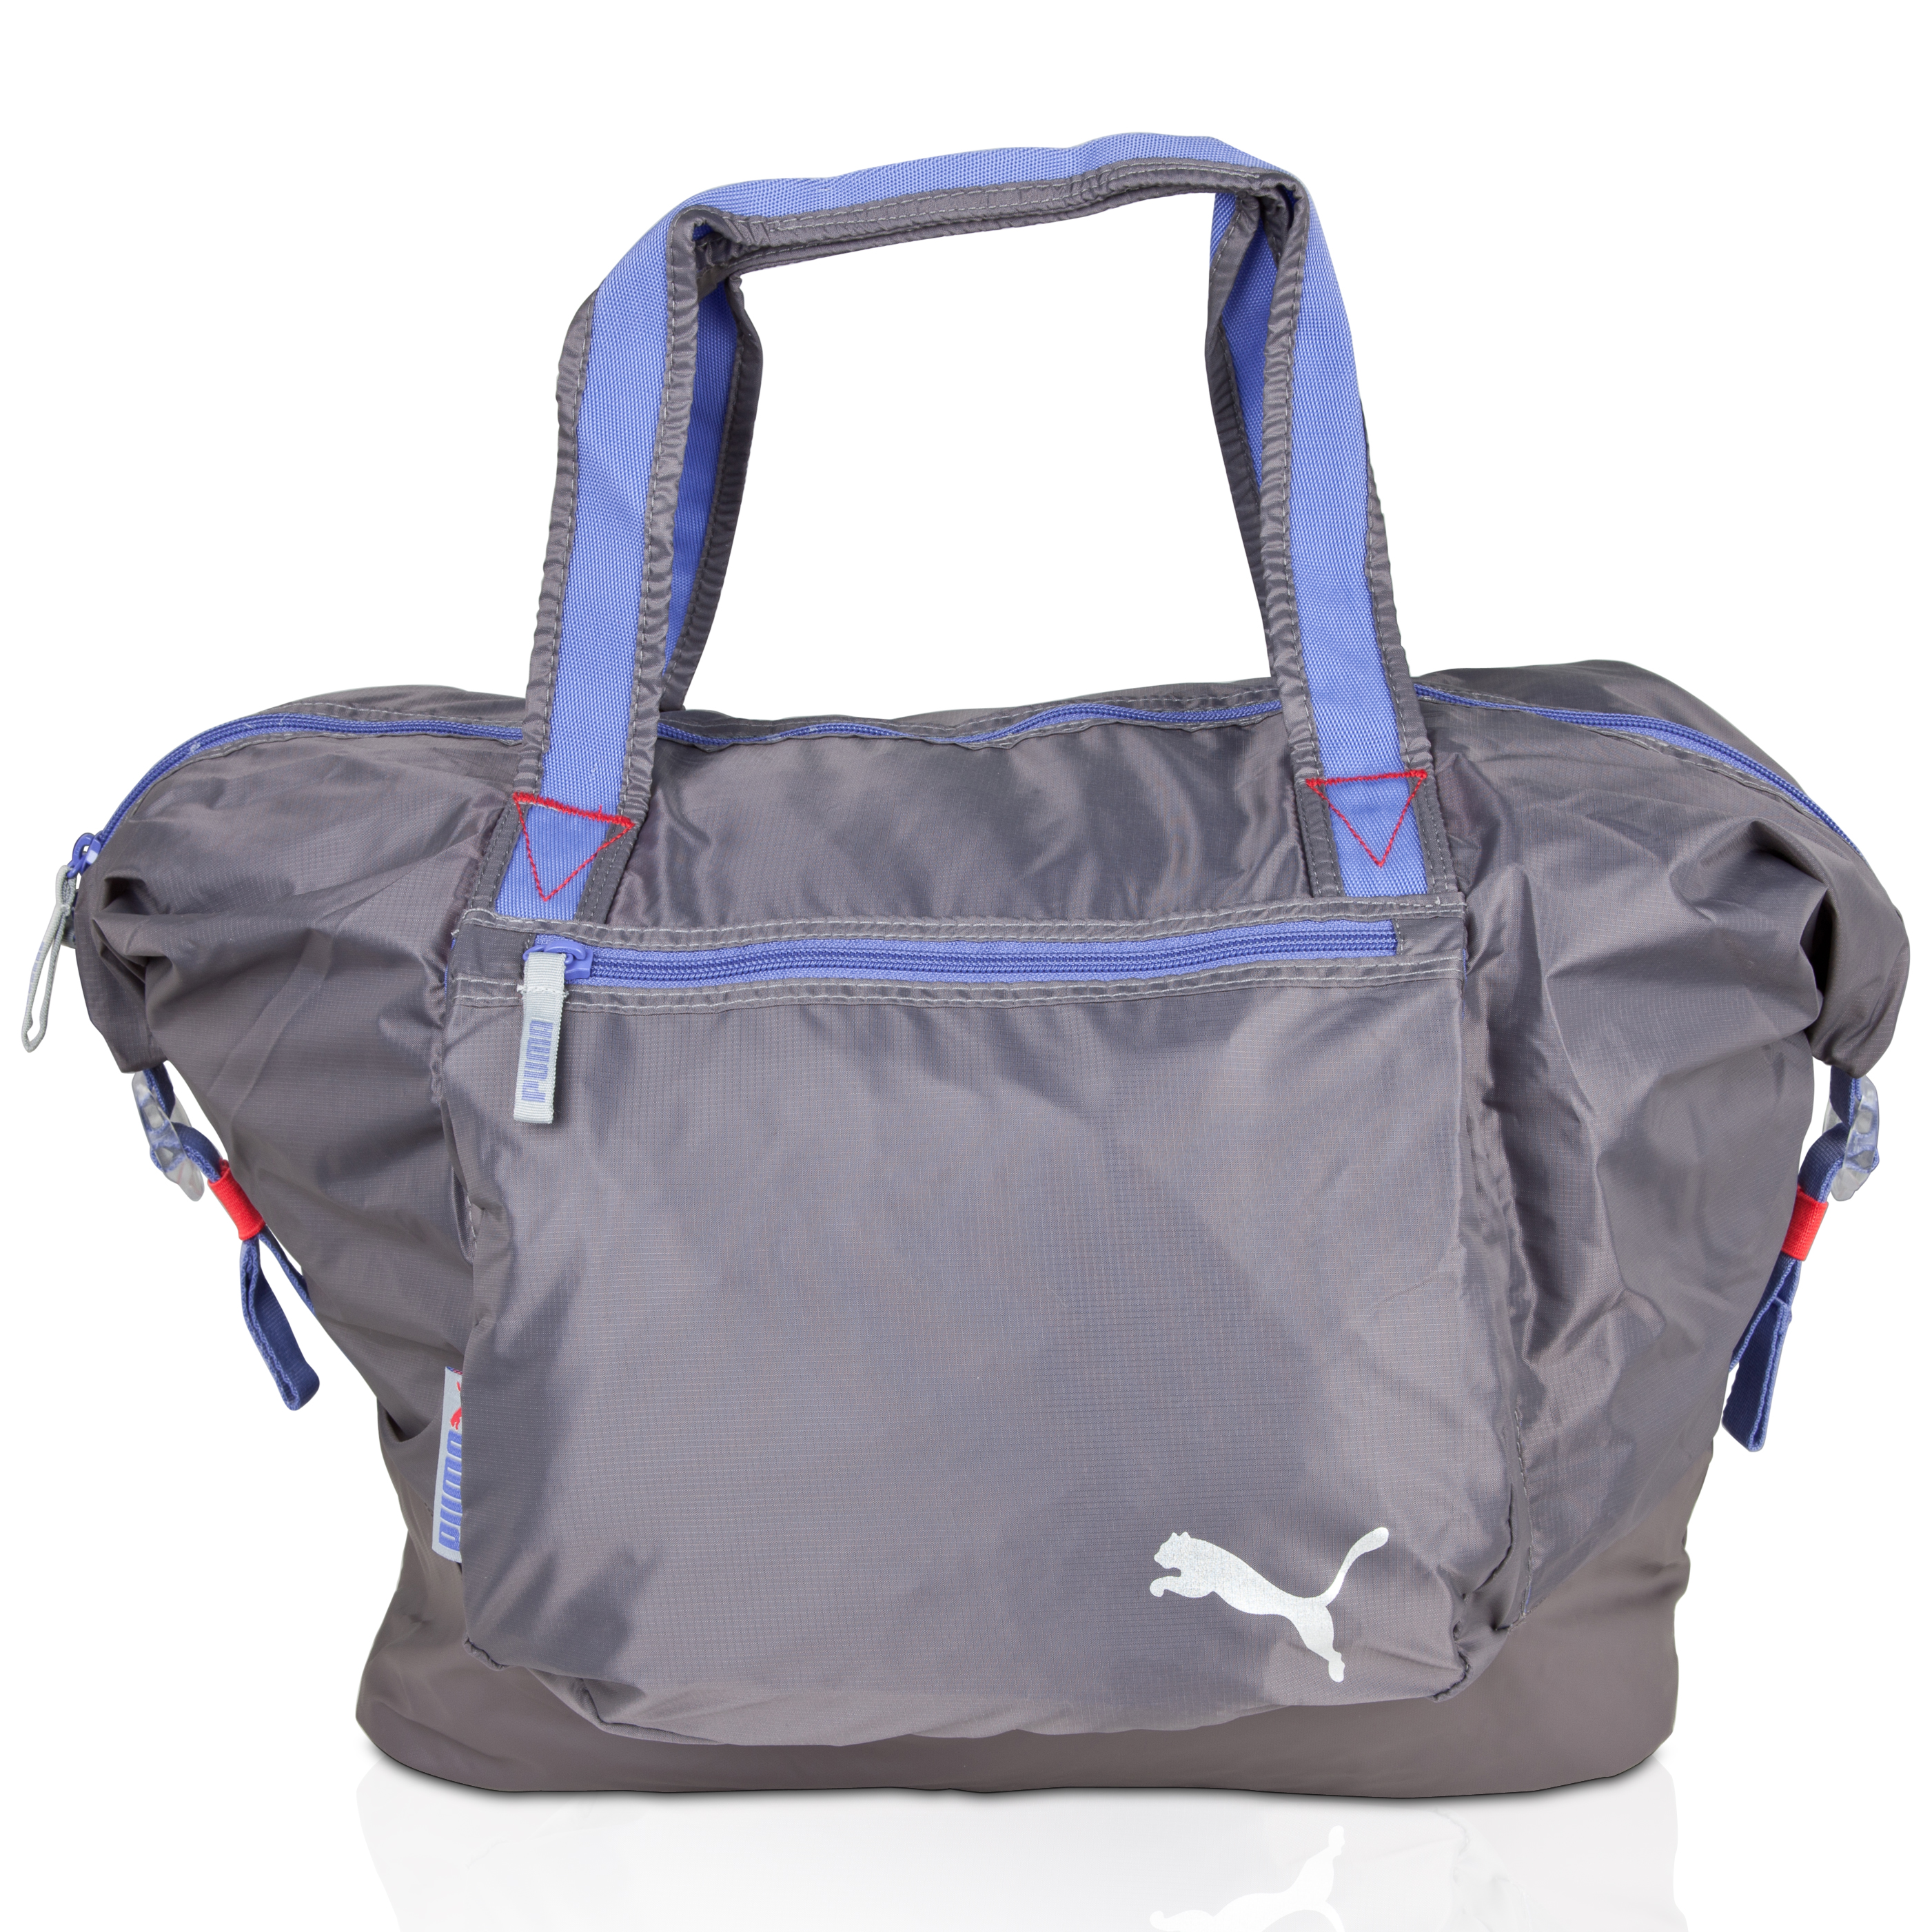 Puma Fitness work out bag - grey/violet - Female